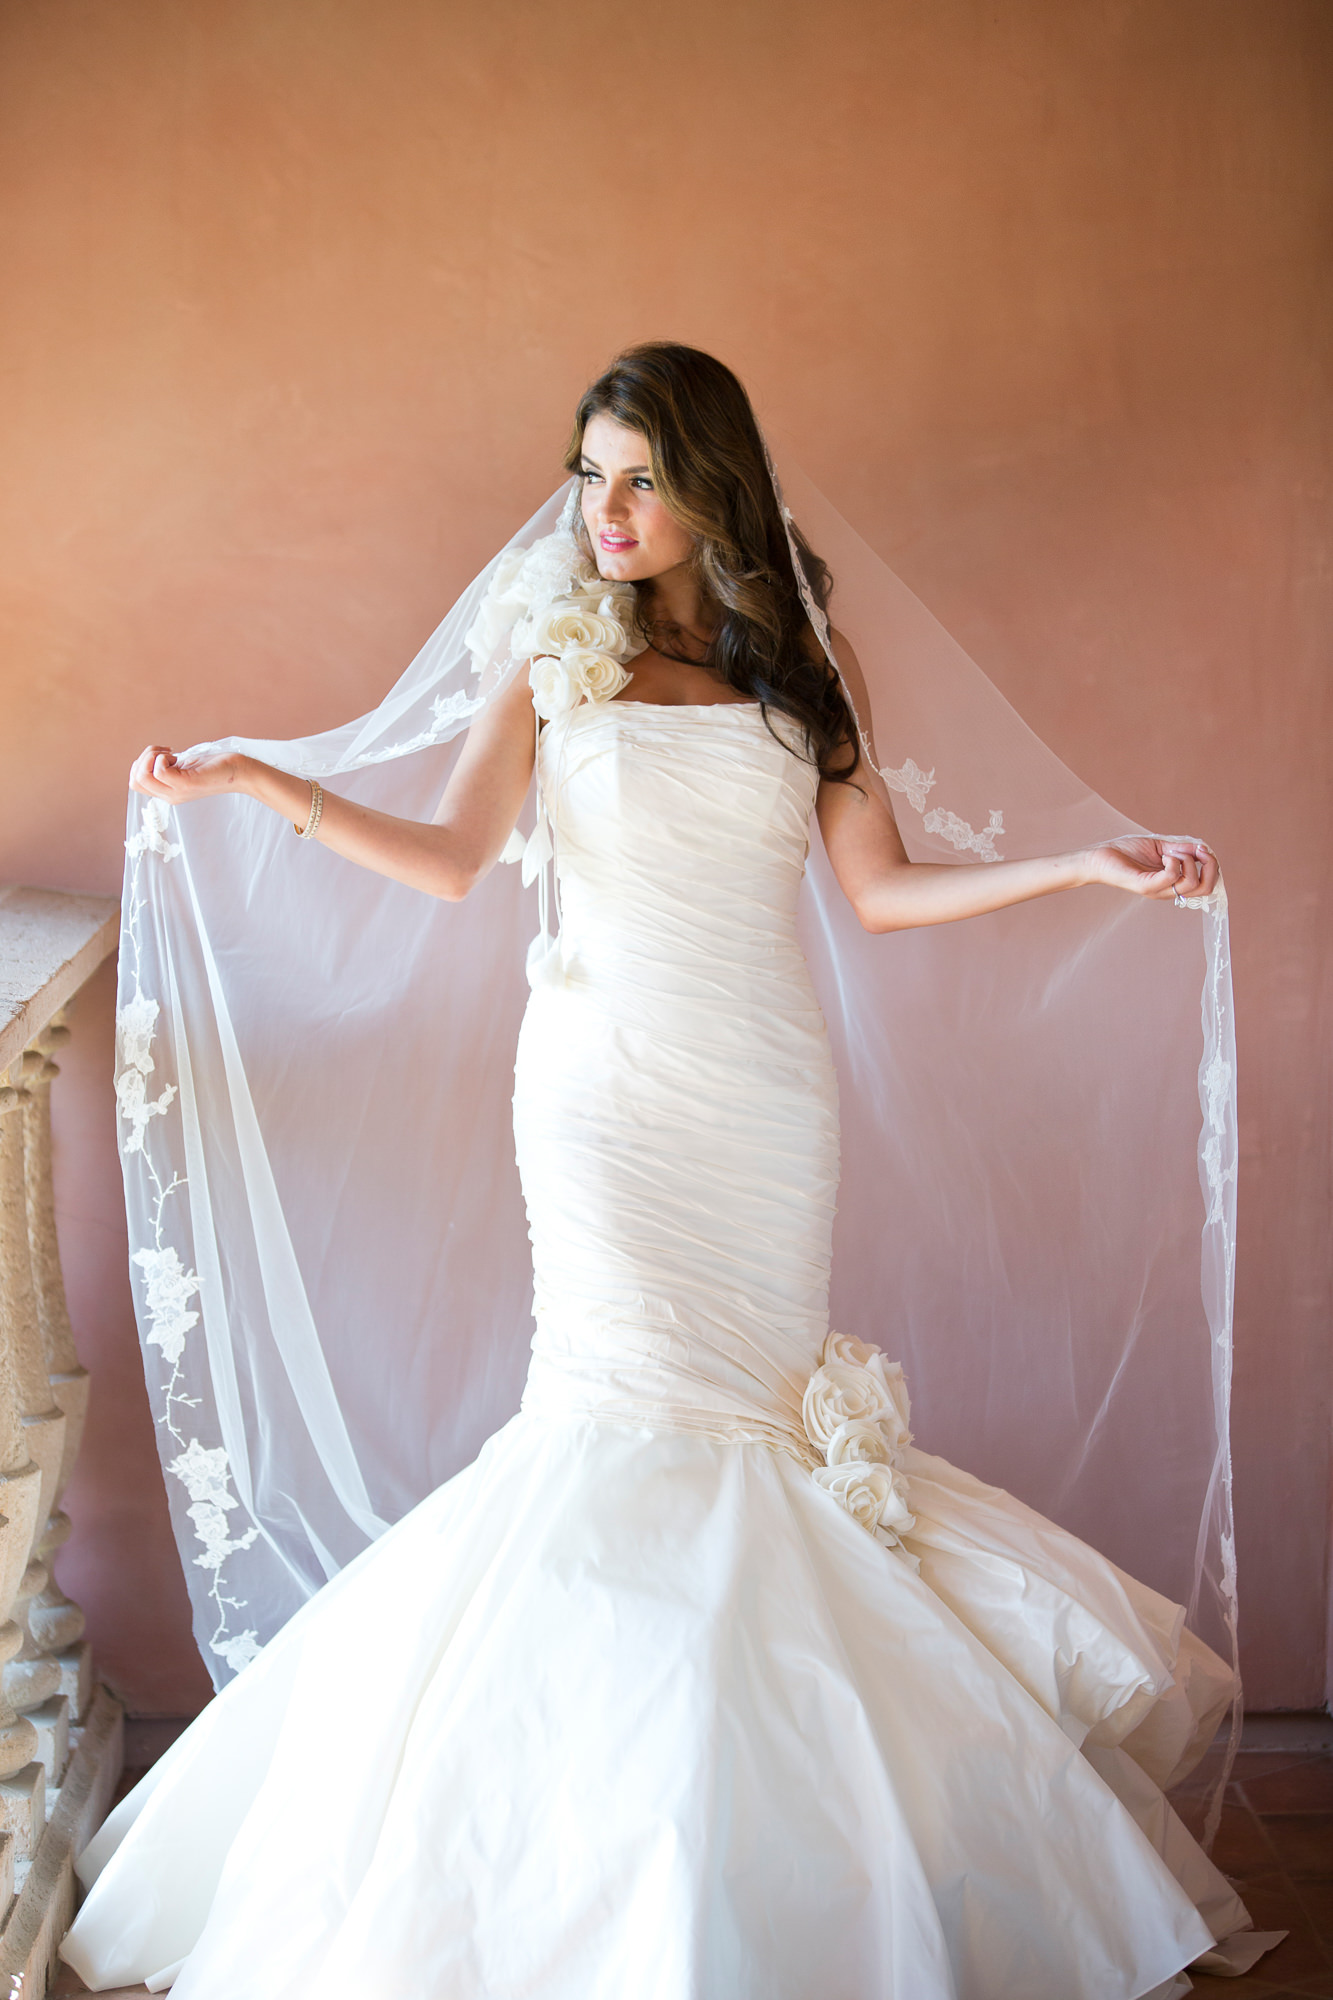 Bride in strapless trump gown and mantiall veil- photo by Roberto Valenzuela